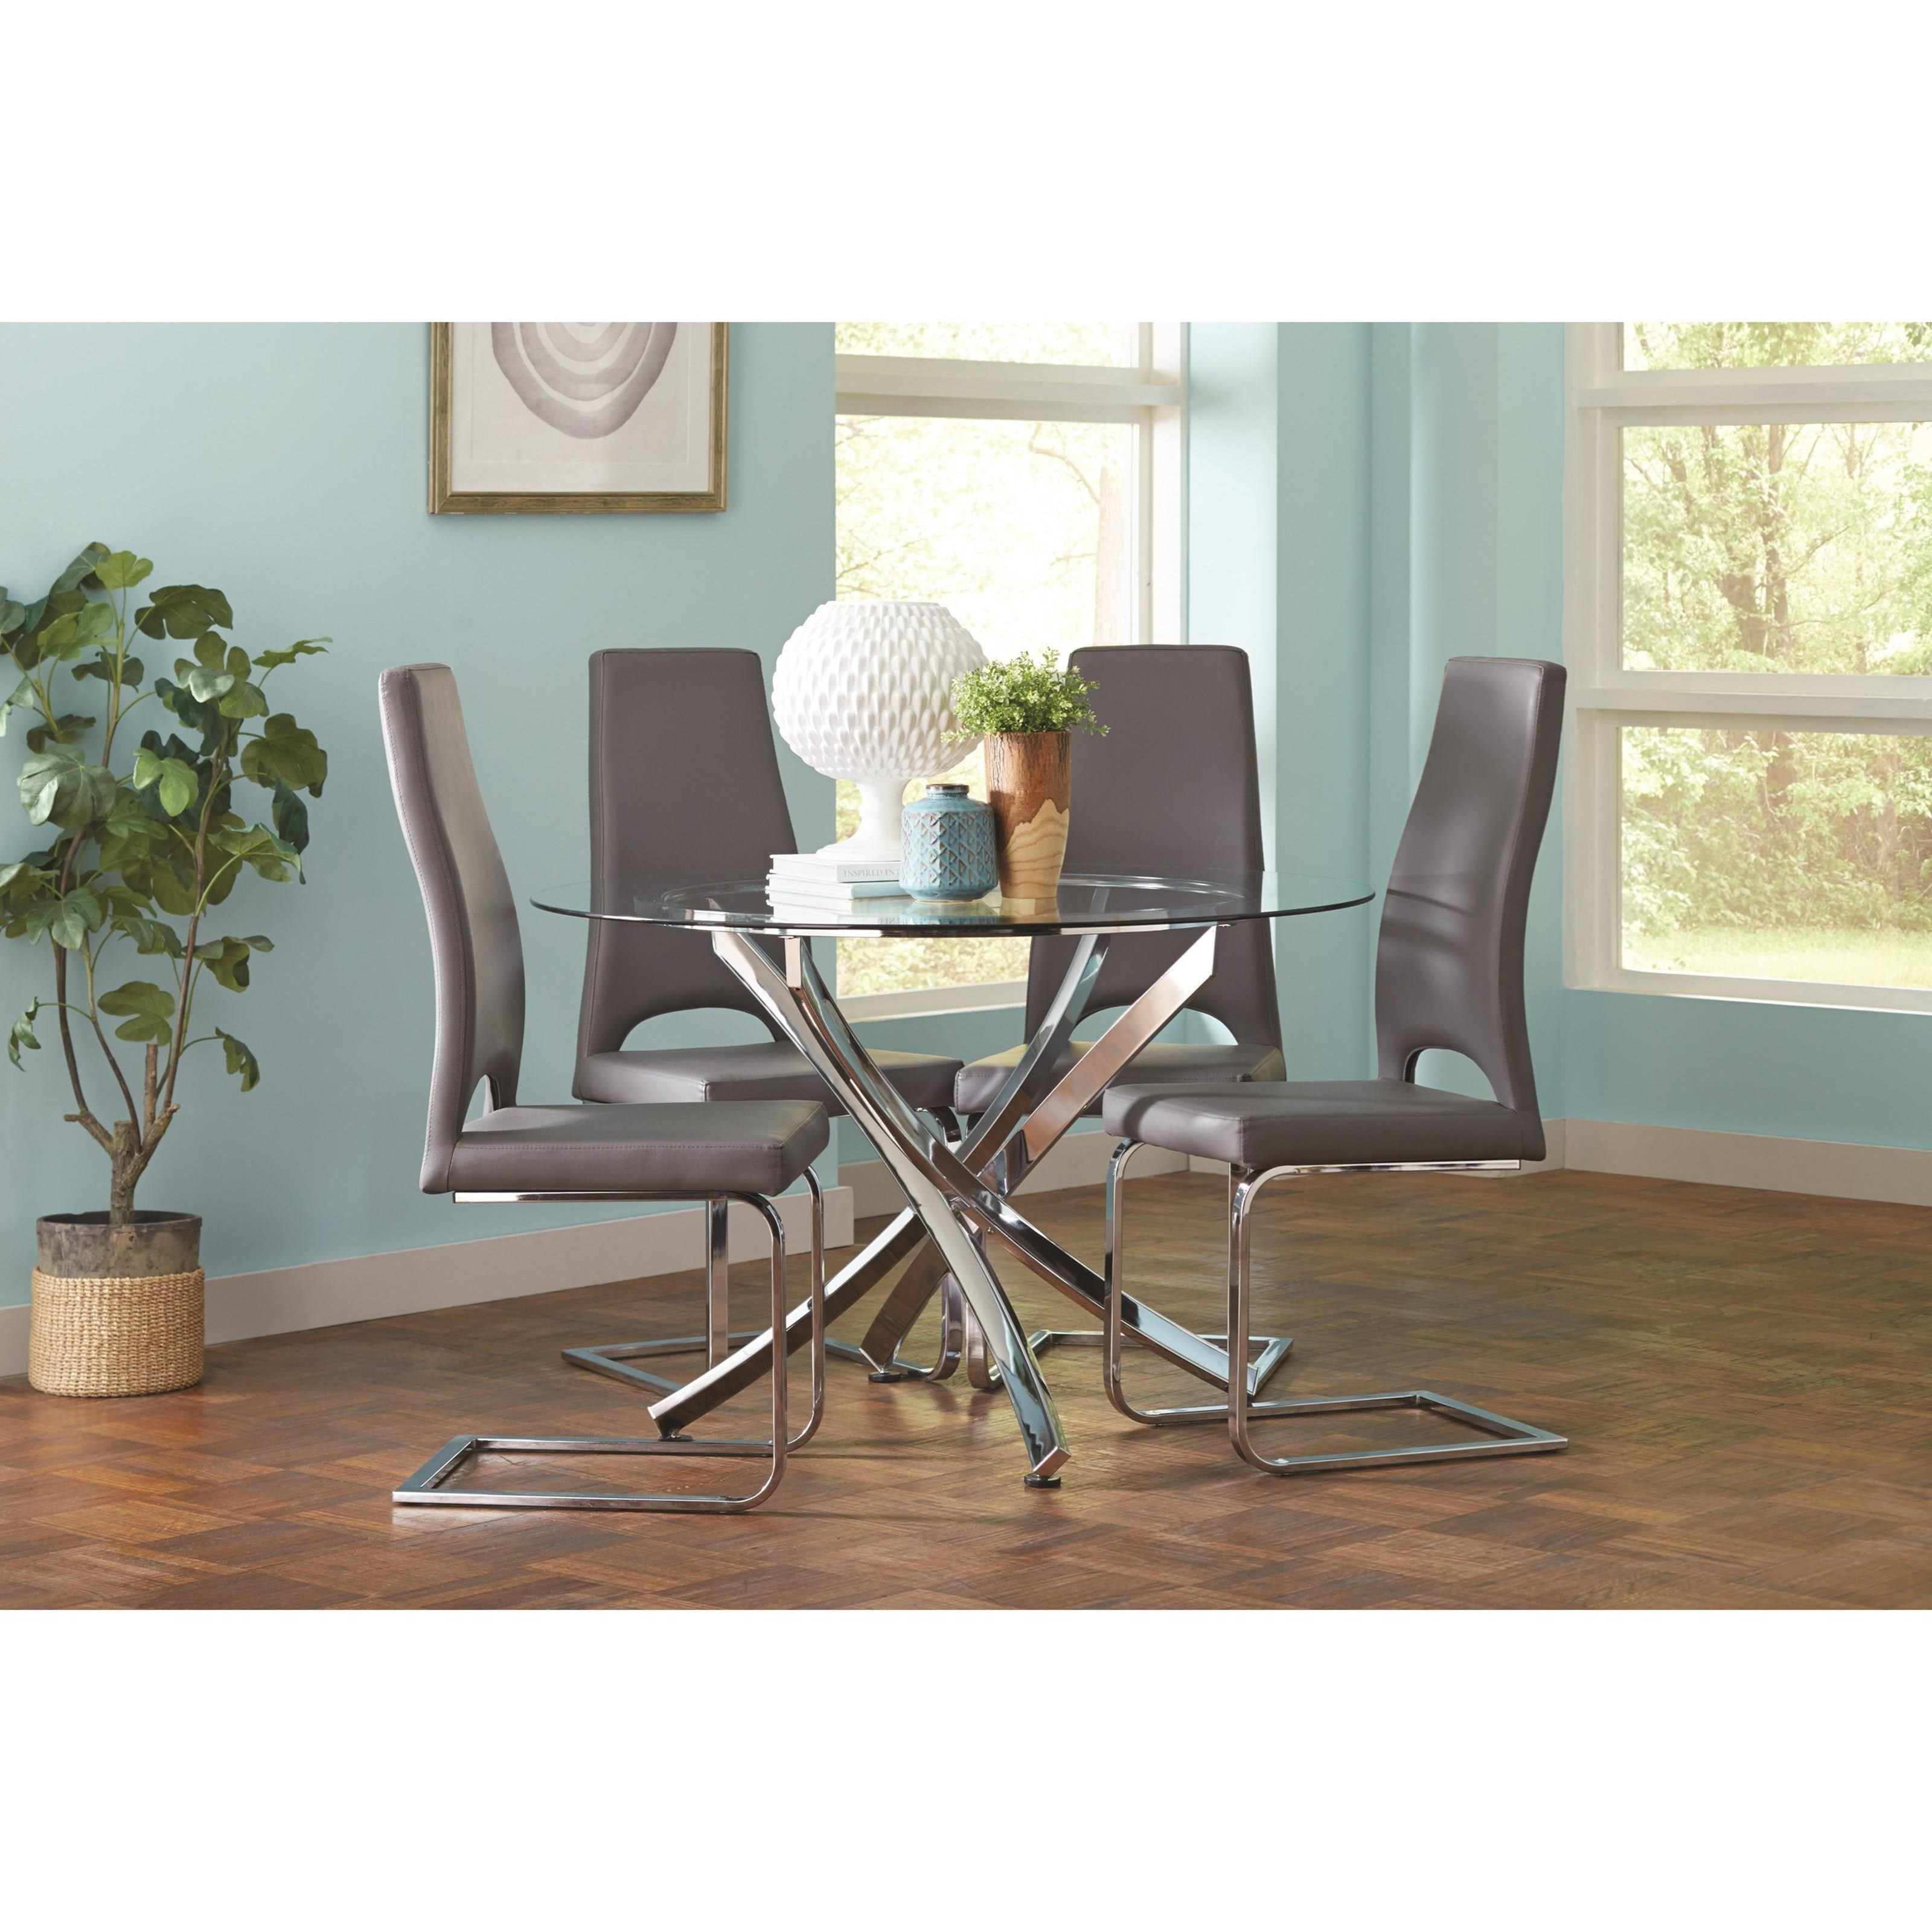 affordable upholstered dining chairs vintage accent chair and bar stools contemporary